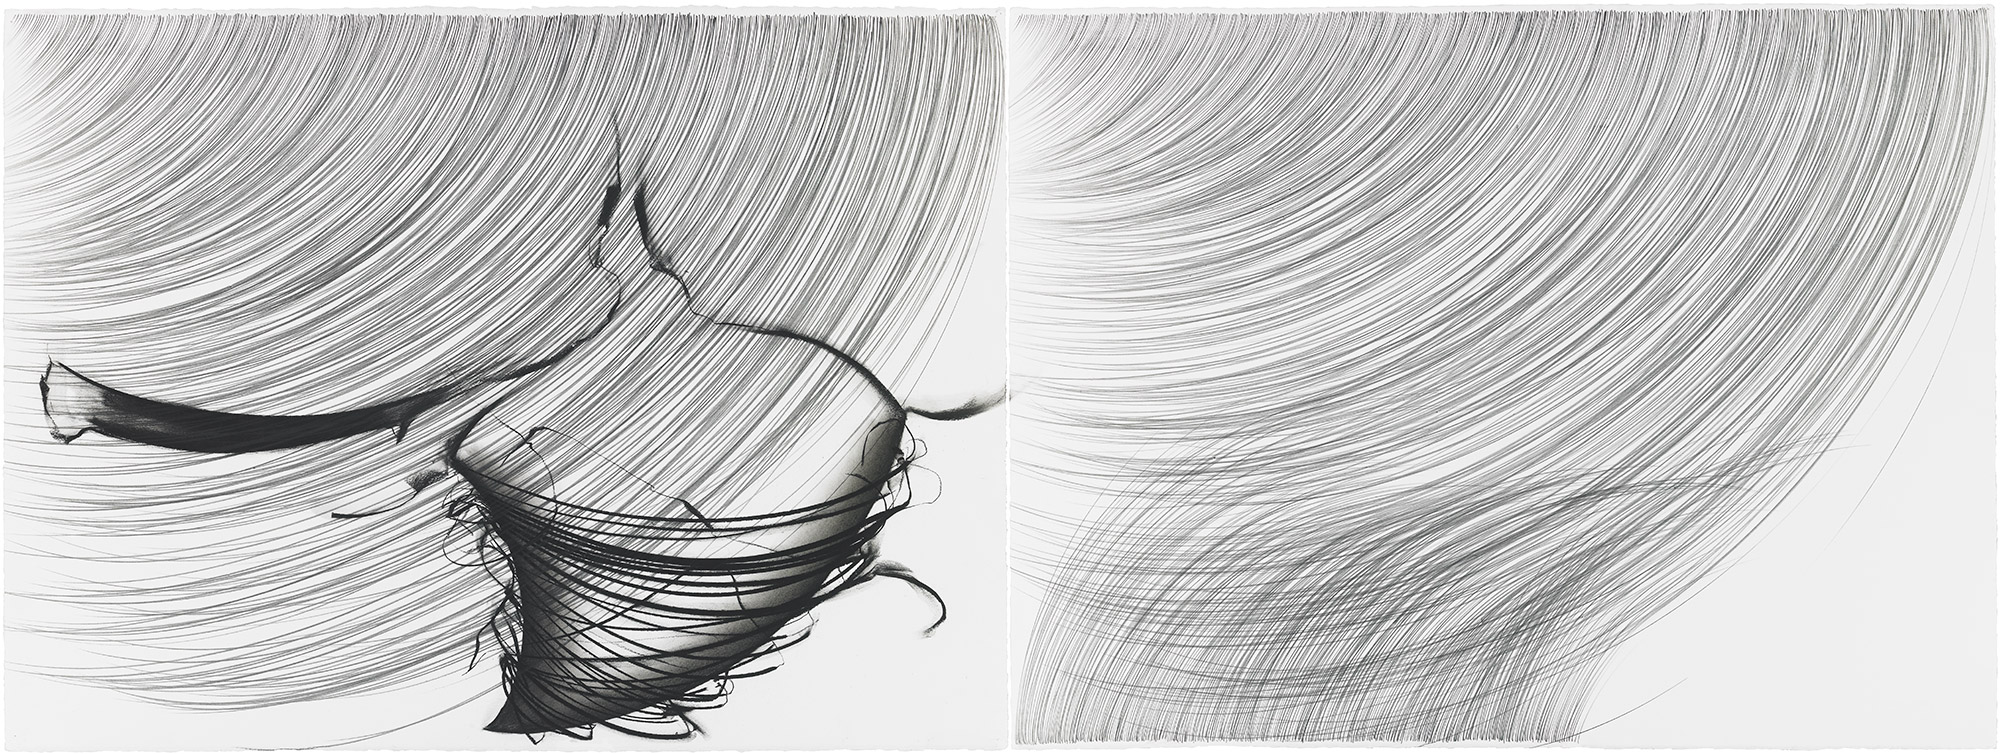 Bone Springs Rain Grass   graphite and pastel pigment on cotton paper, diptych, 22 ¼ x 60 inches, 2005